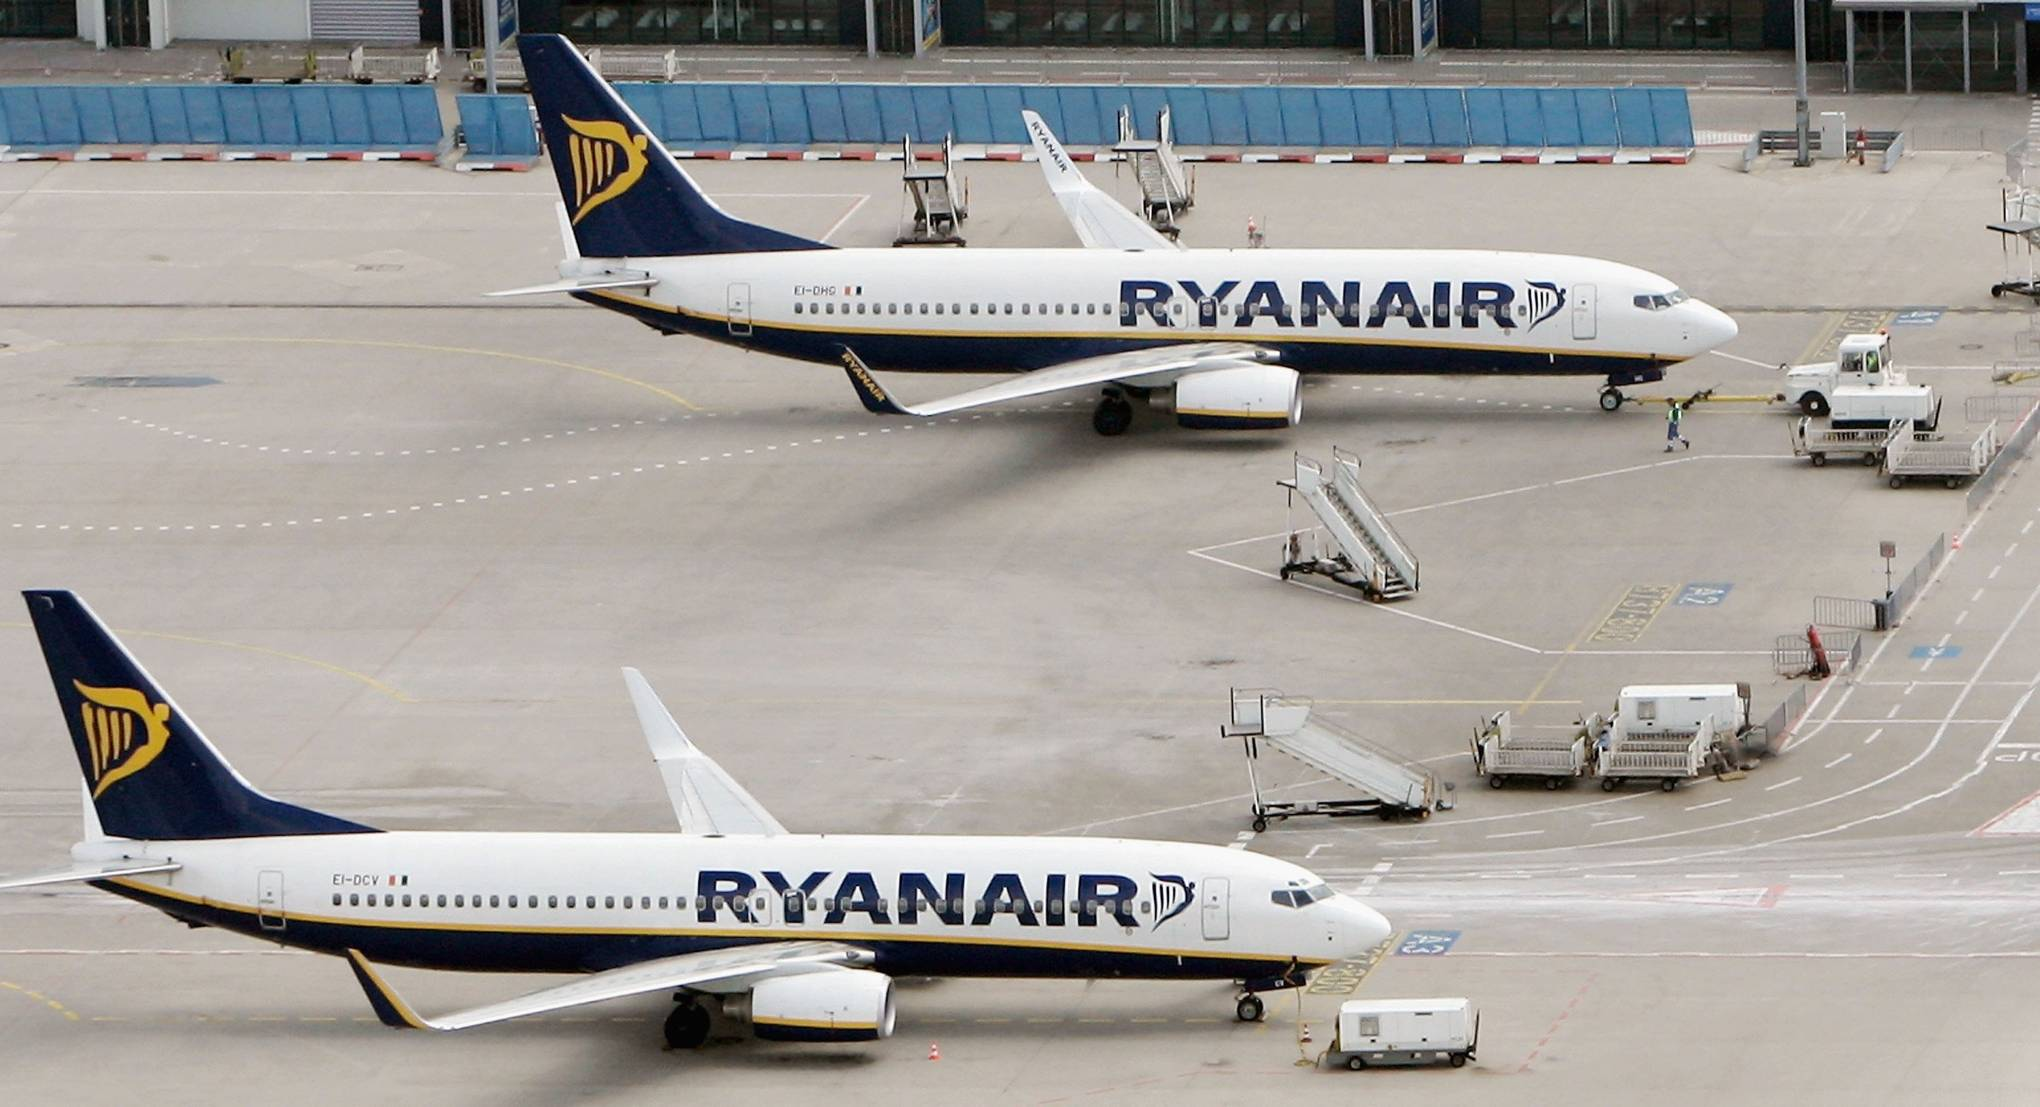 Even Ryanair Says Its Hand Luggage Rules Make Boarding Too Chaotic Wired Uk